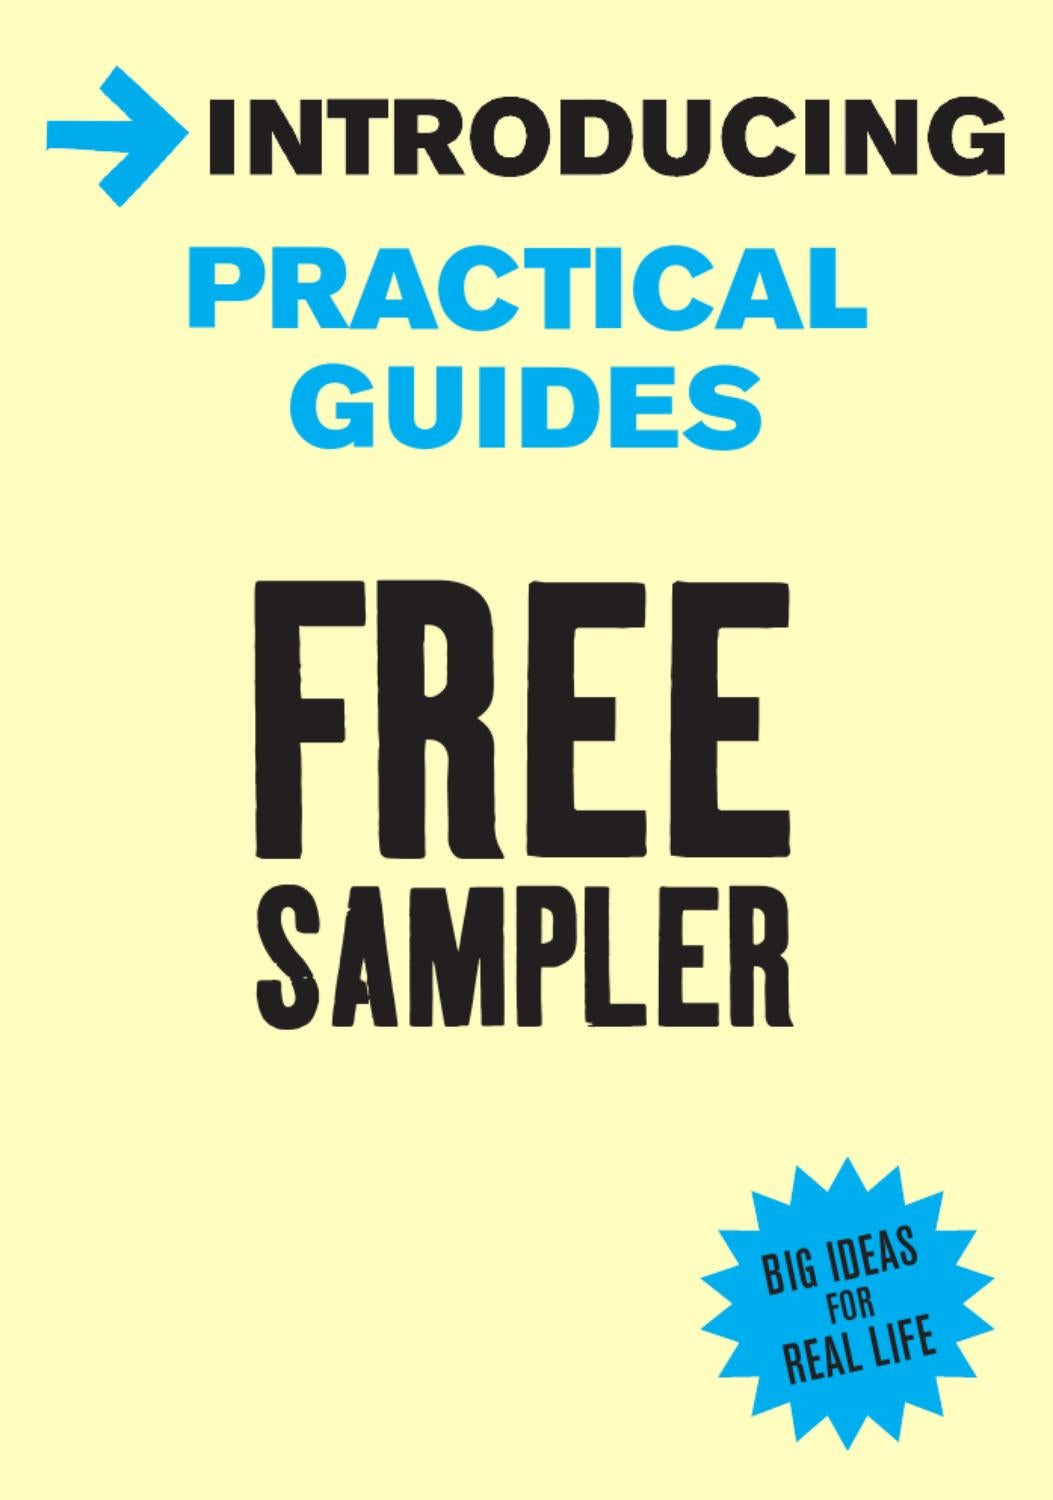 introducing practical guides free sampler by icon books